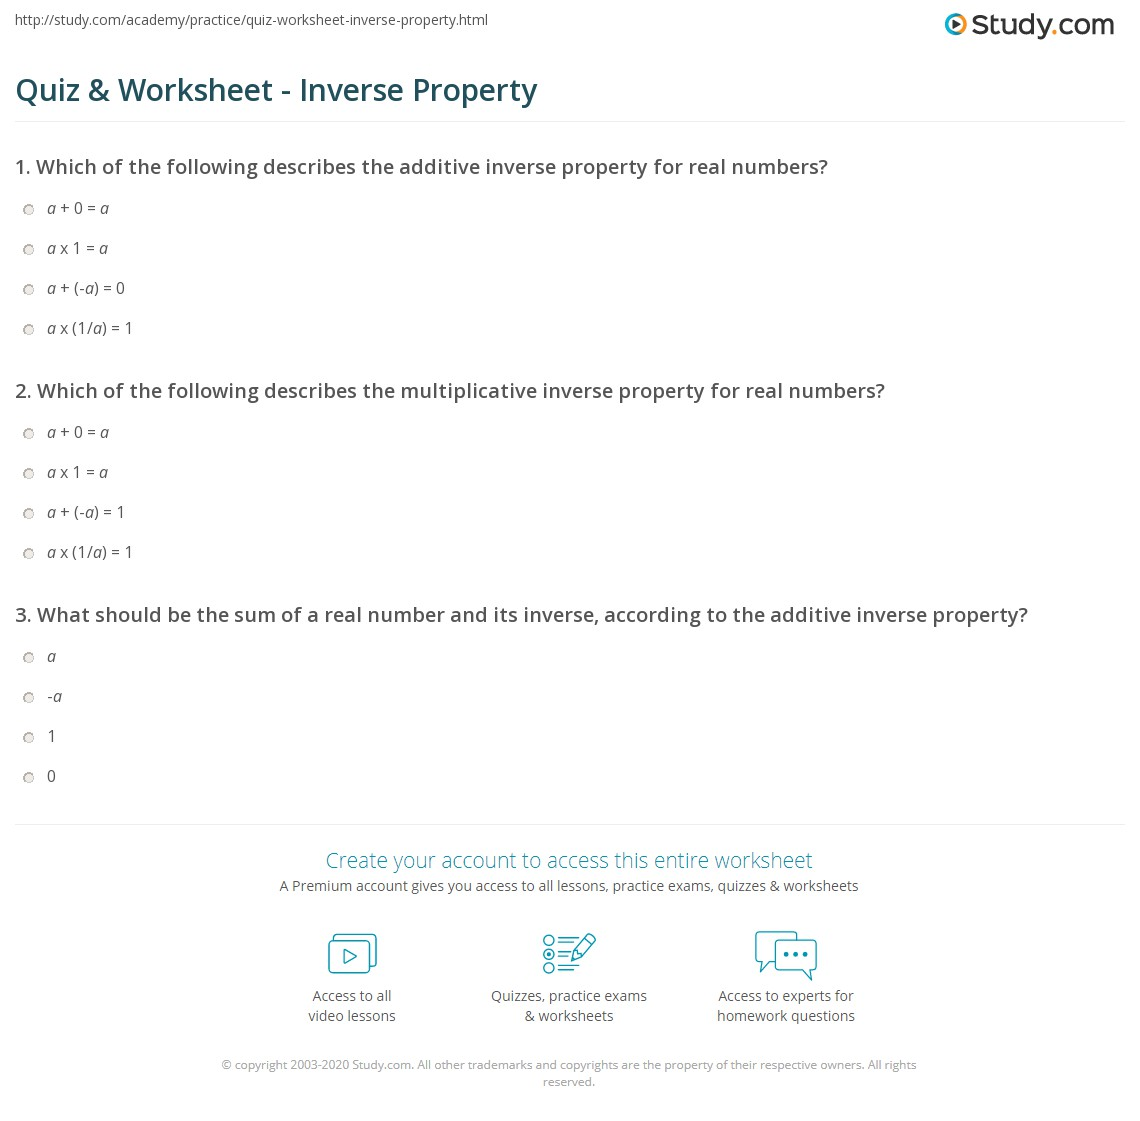 Worksheets Classifying Real Numbers Worksheet quiz worksheet inverse property study com which of the following describes multiplicative for real numbers